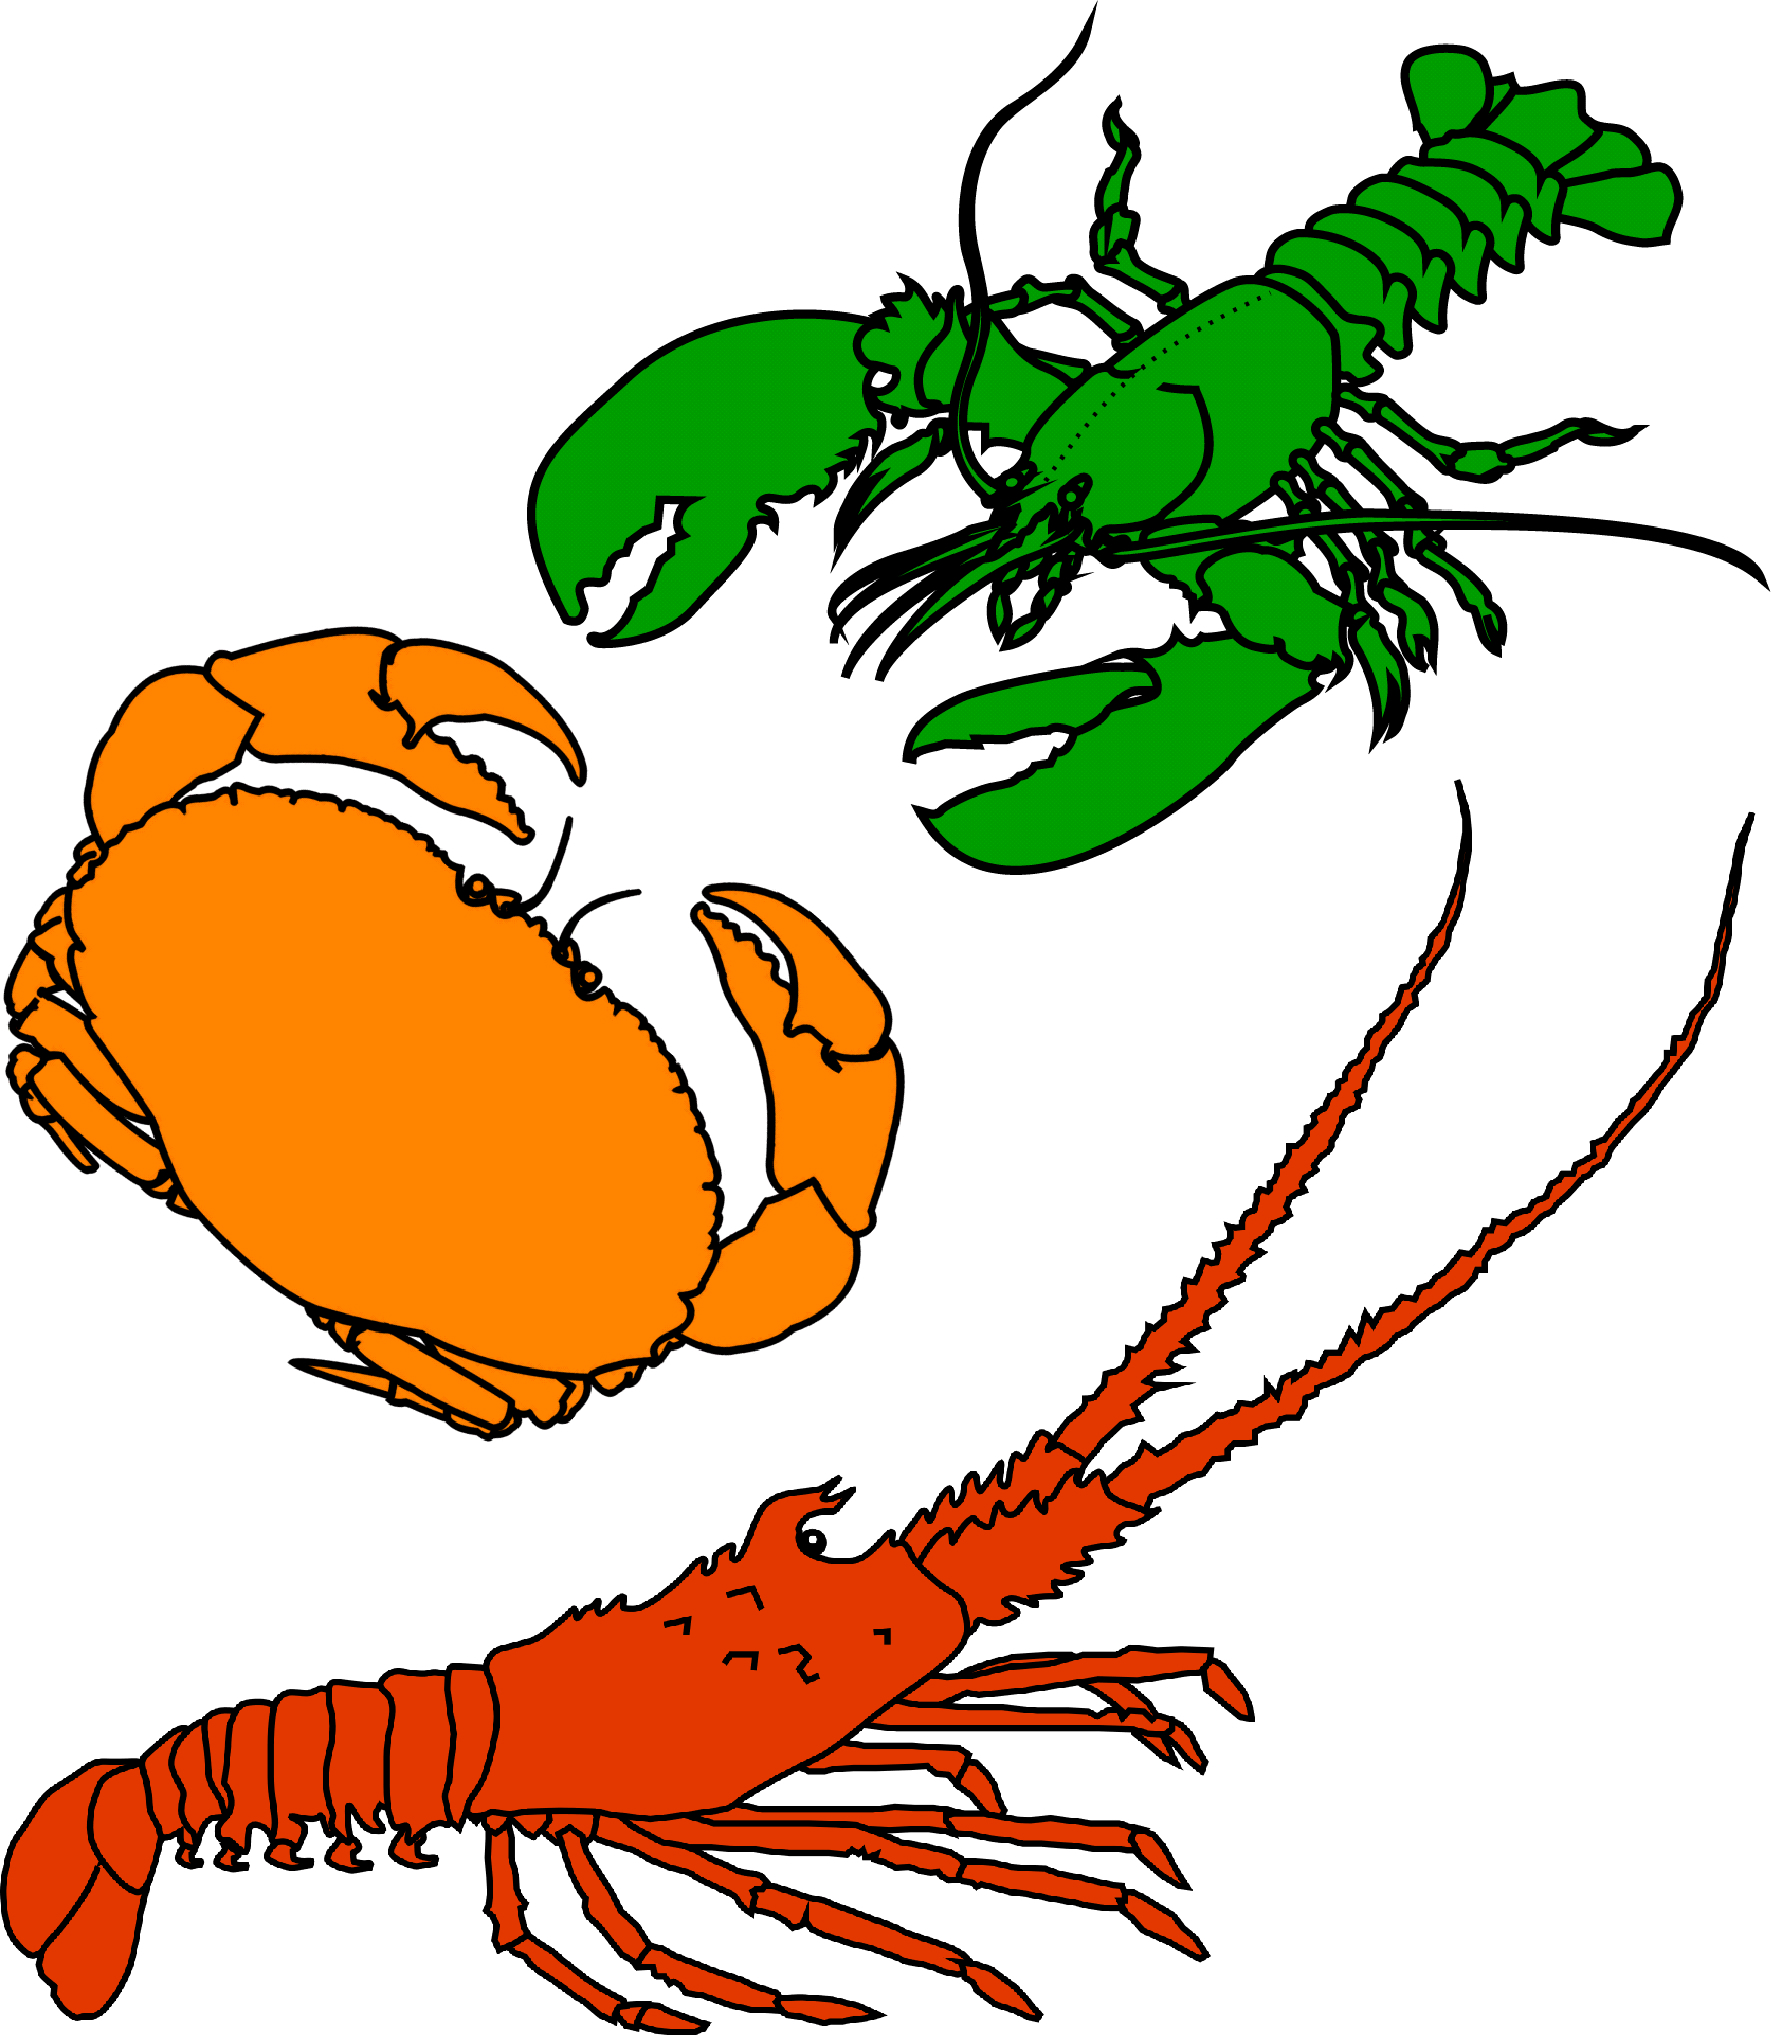 Crustacean clipart #2, Download drawings